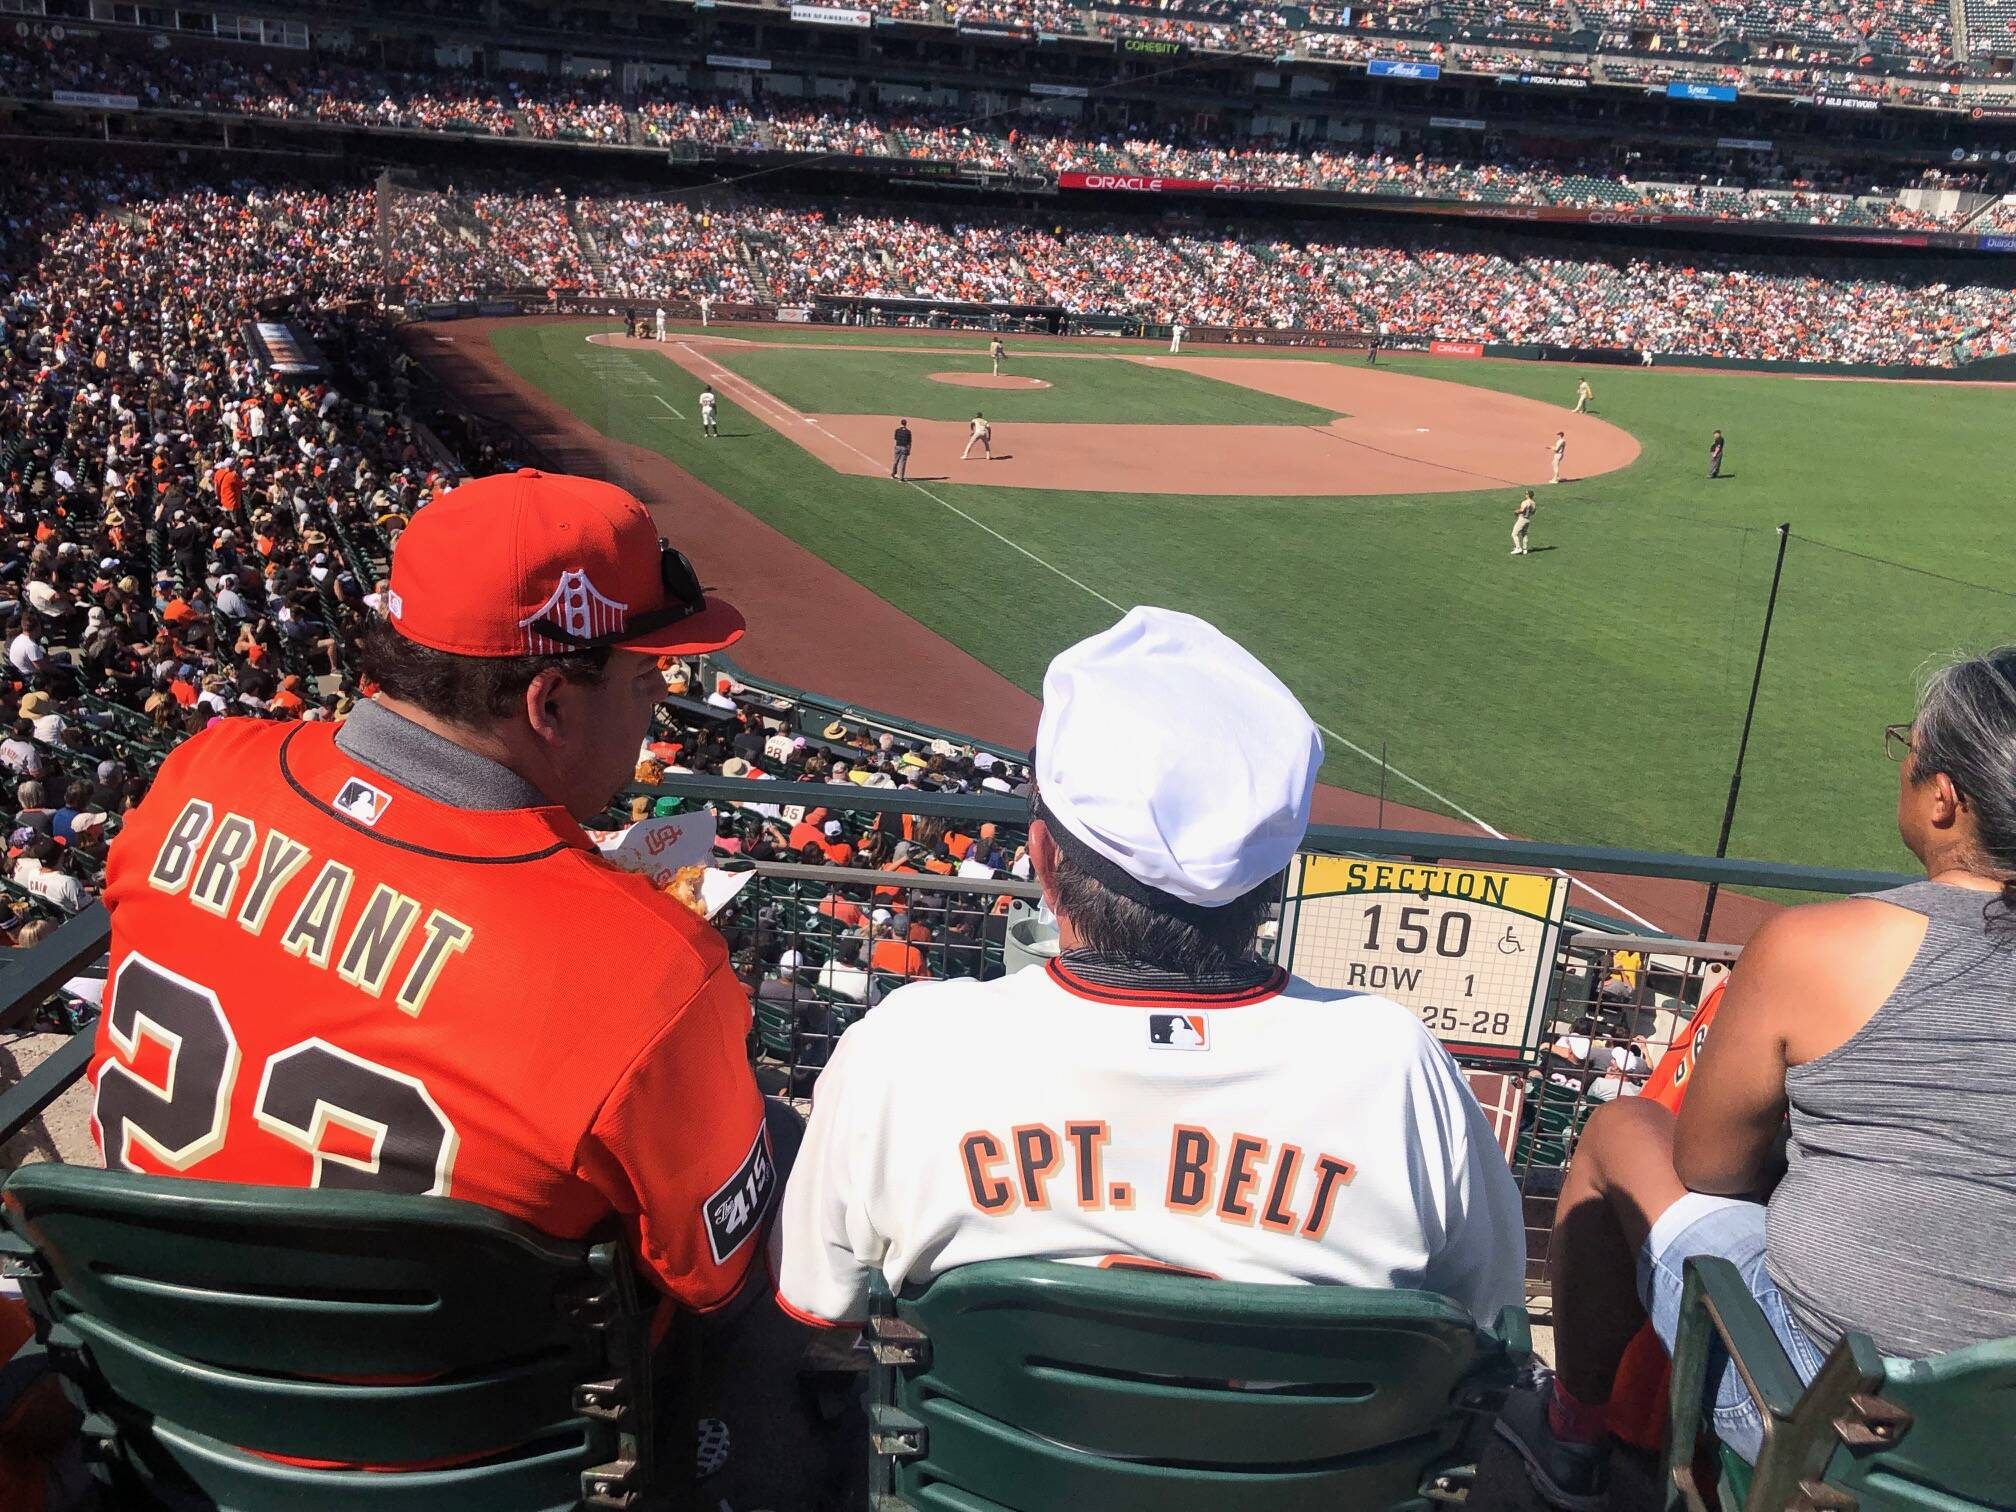 The scene at Oracle Park was bucolic Sunday, with fans celebrating a division title earned with the Giants' record-setting 107th win of the 2021 season.<ins> (Al Saracevic/The Examiner)</ins>